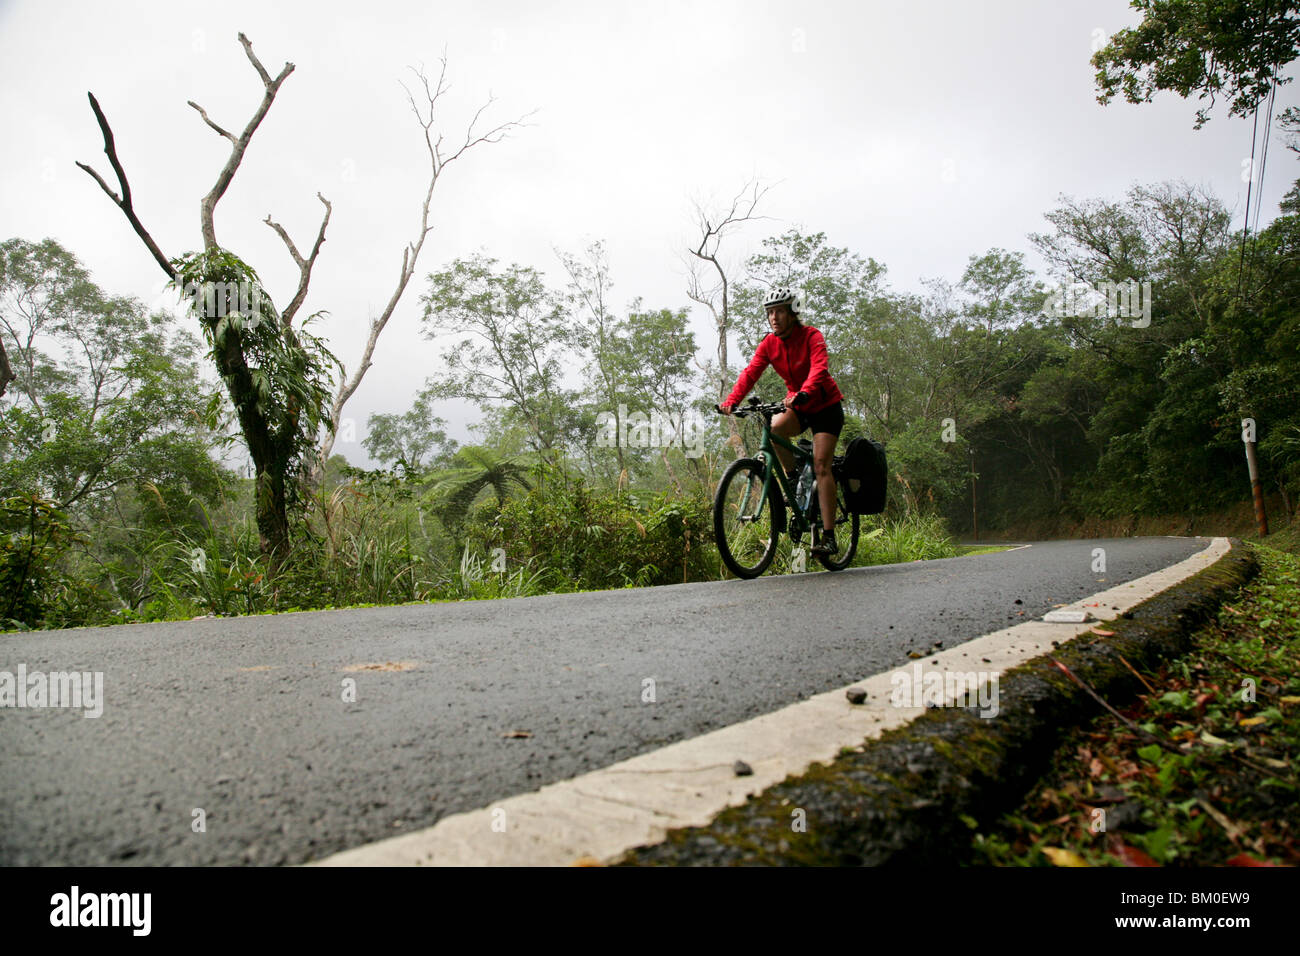 German woman cycling on a road in the rainforest, east coast of Taiwan, Republic of China, Taiwan, Asia - Stock Image